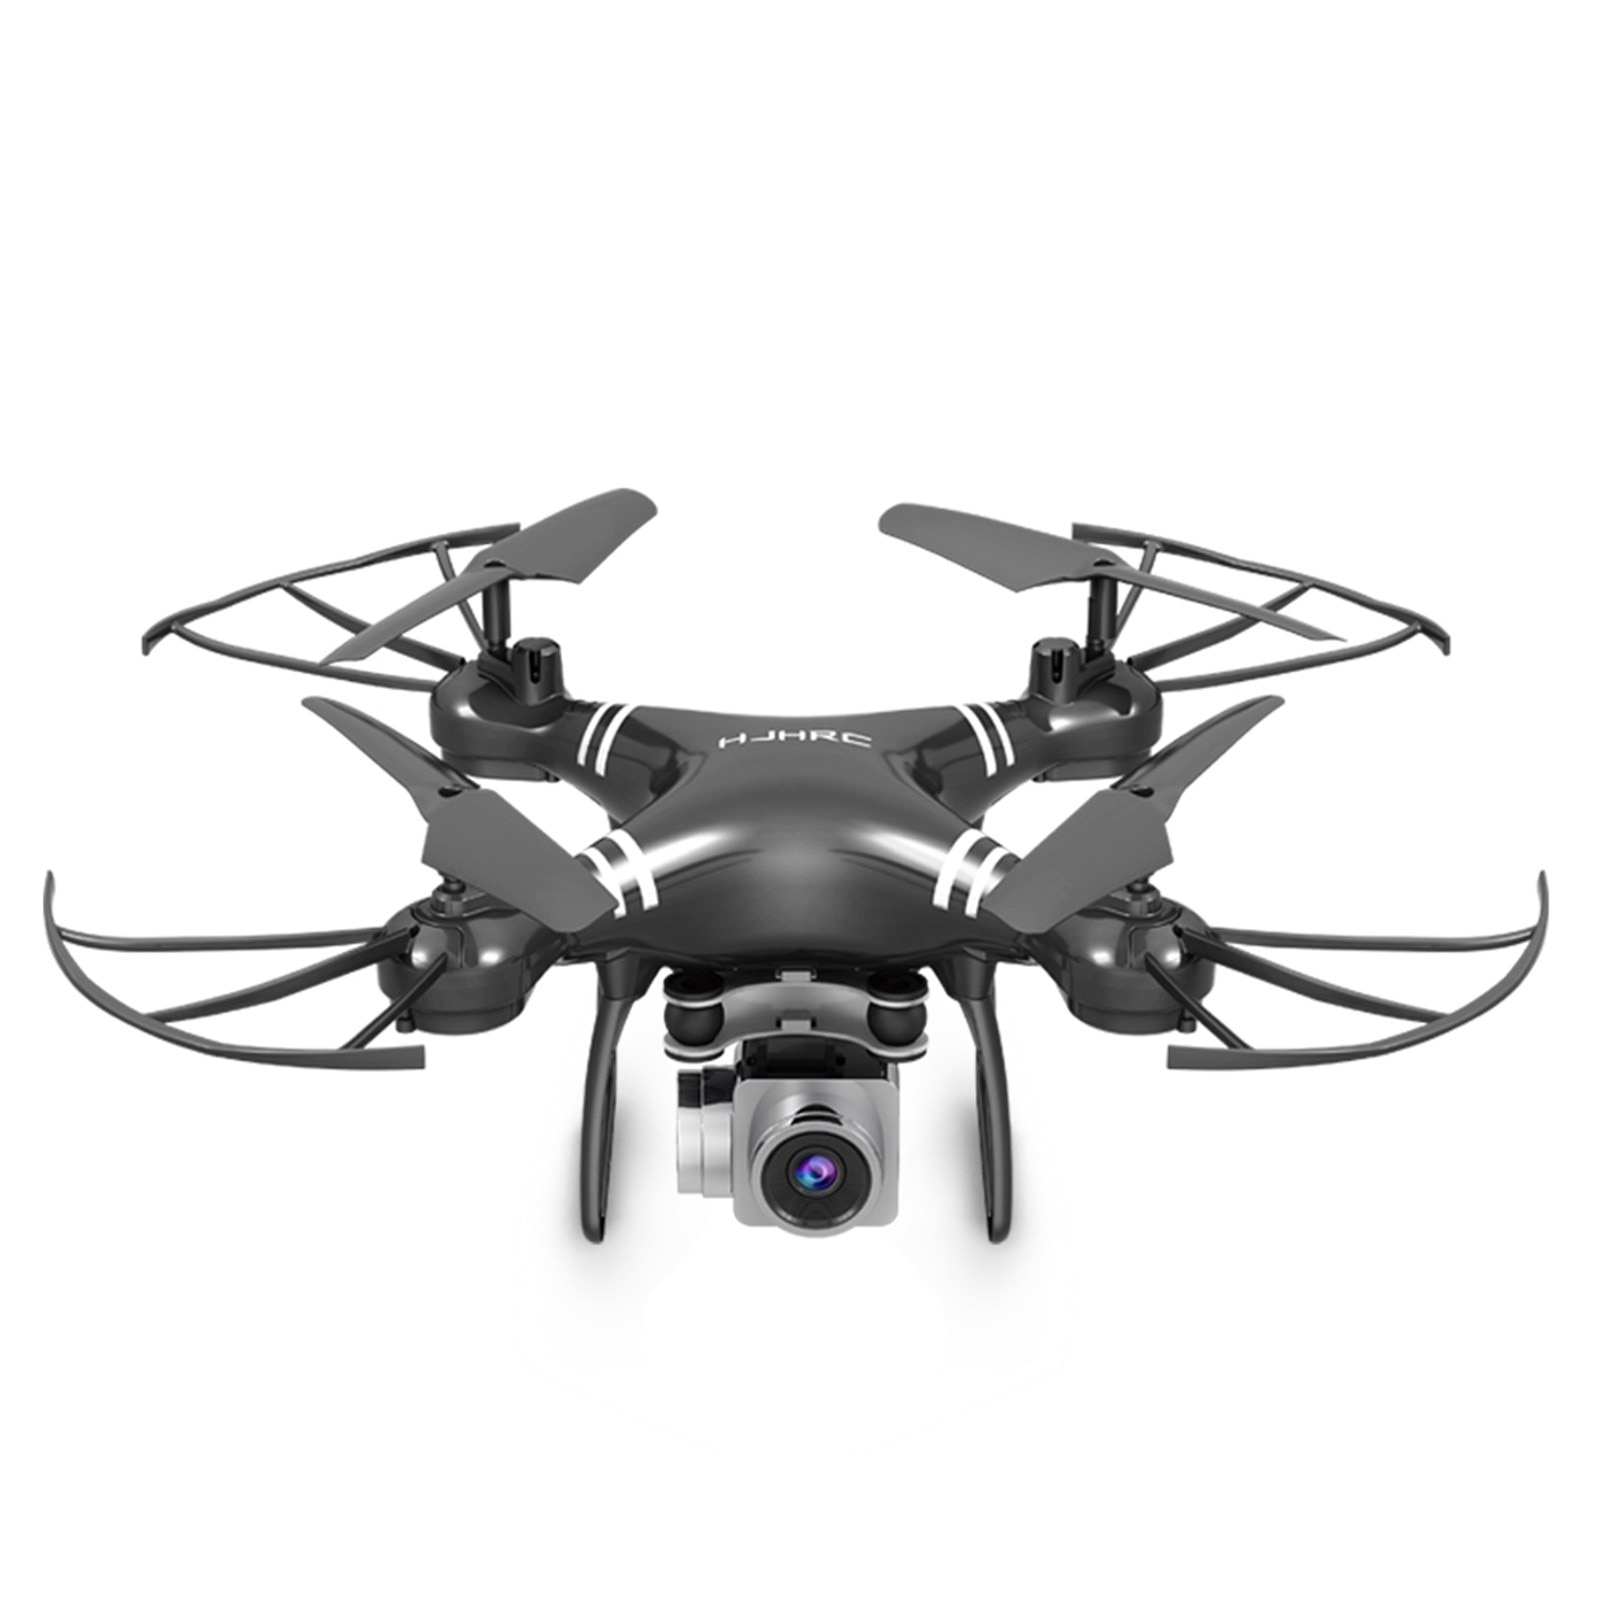 Haf0d3eb190354e1086ccc68b7b72cbbcJ - Hjhrc Four-axis Aerial Photography Aircraft Drone With Camera Hd 4k Wifi Fpv Foldable Drone Height Holding Headless Quadcopter